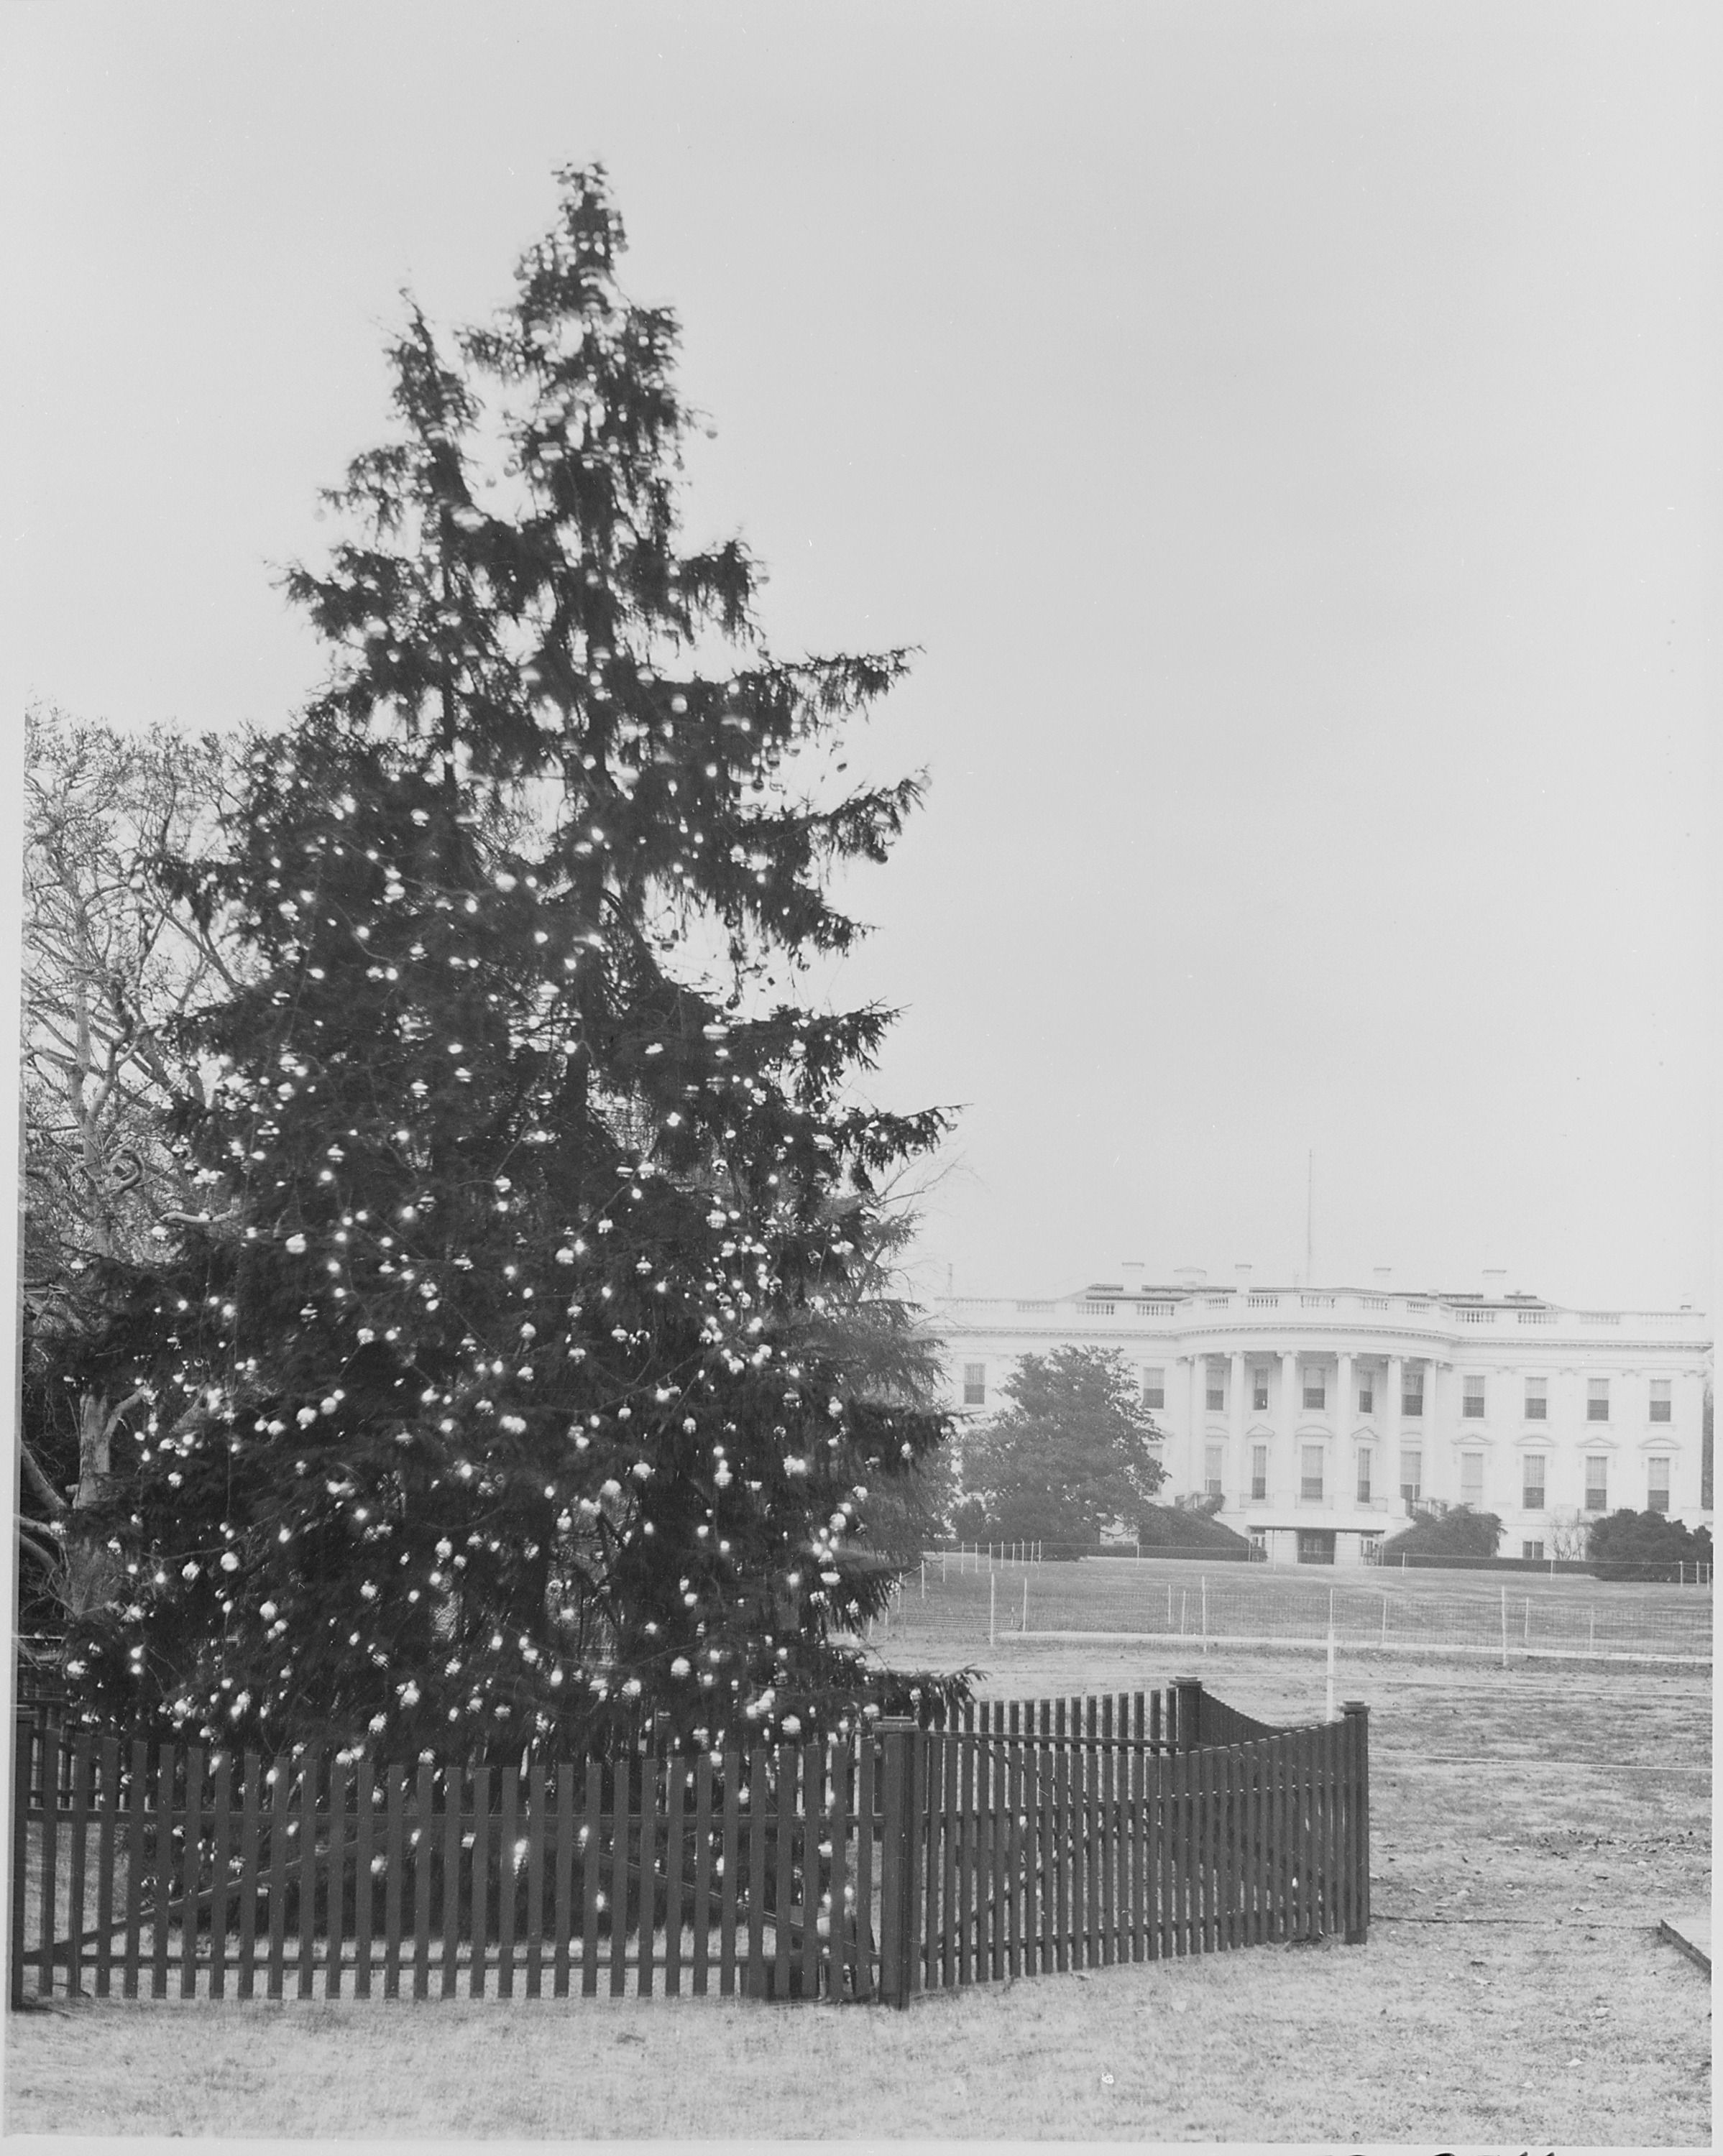 https://i2.wp.com/upload.wikimedia.org/wikipedia/commons/2/2a/Daytime_view_of_the_White_House_Christmas_Tree_with_the_White_House_in_the_background._It_is_the_day_of_the..._-_NARA_-_199670.jpg